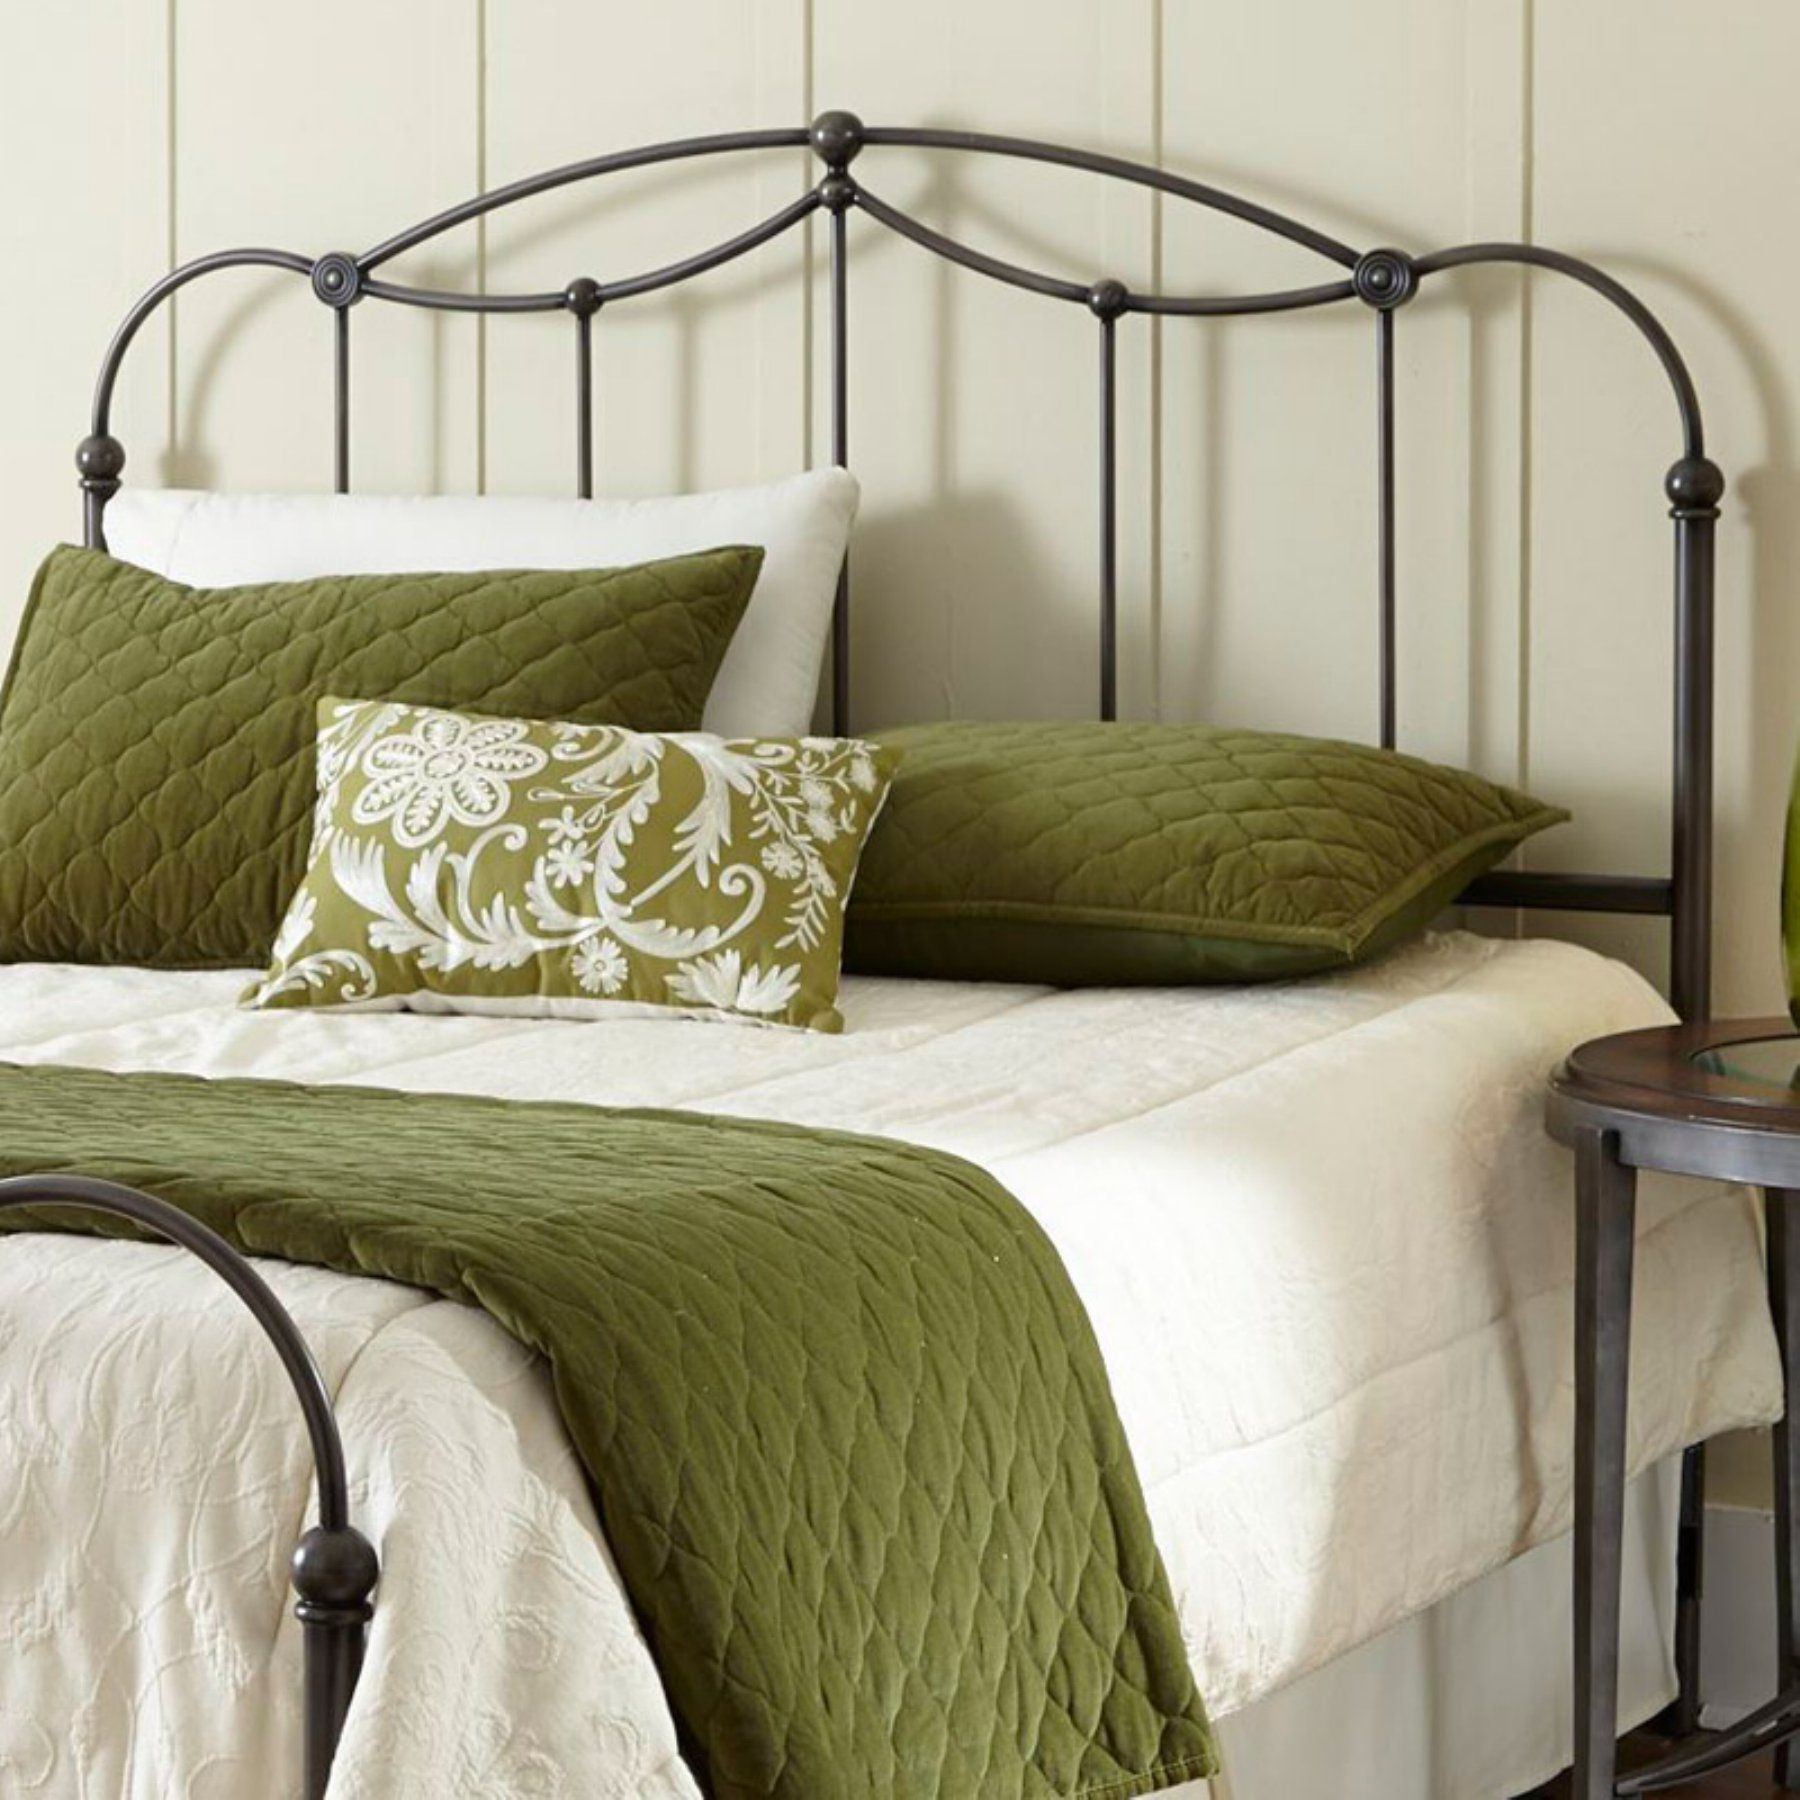 Fashion Bed Group Affinity Metal Headboard B12274 Bed